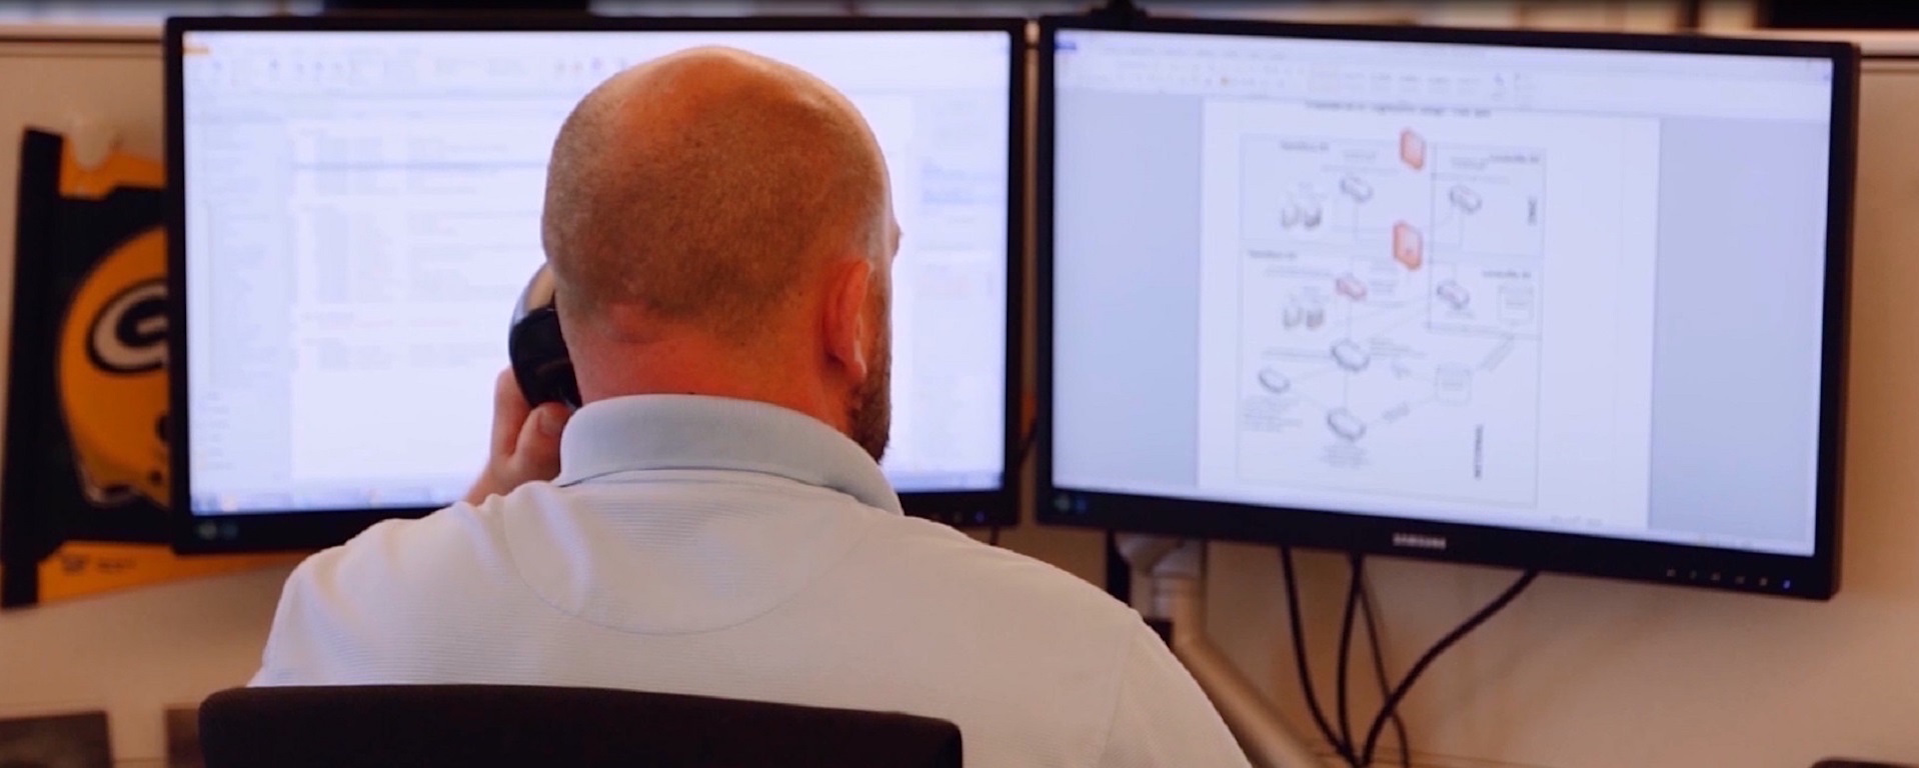 Dual monitors are driving greater productivity for CDW sales managers and executives.